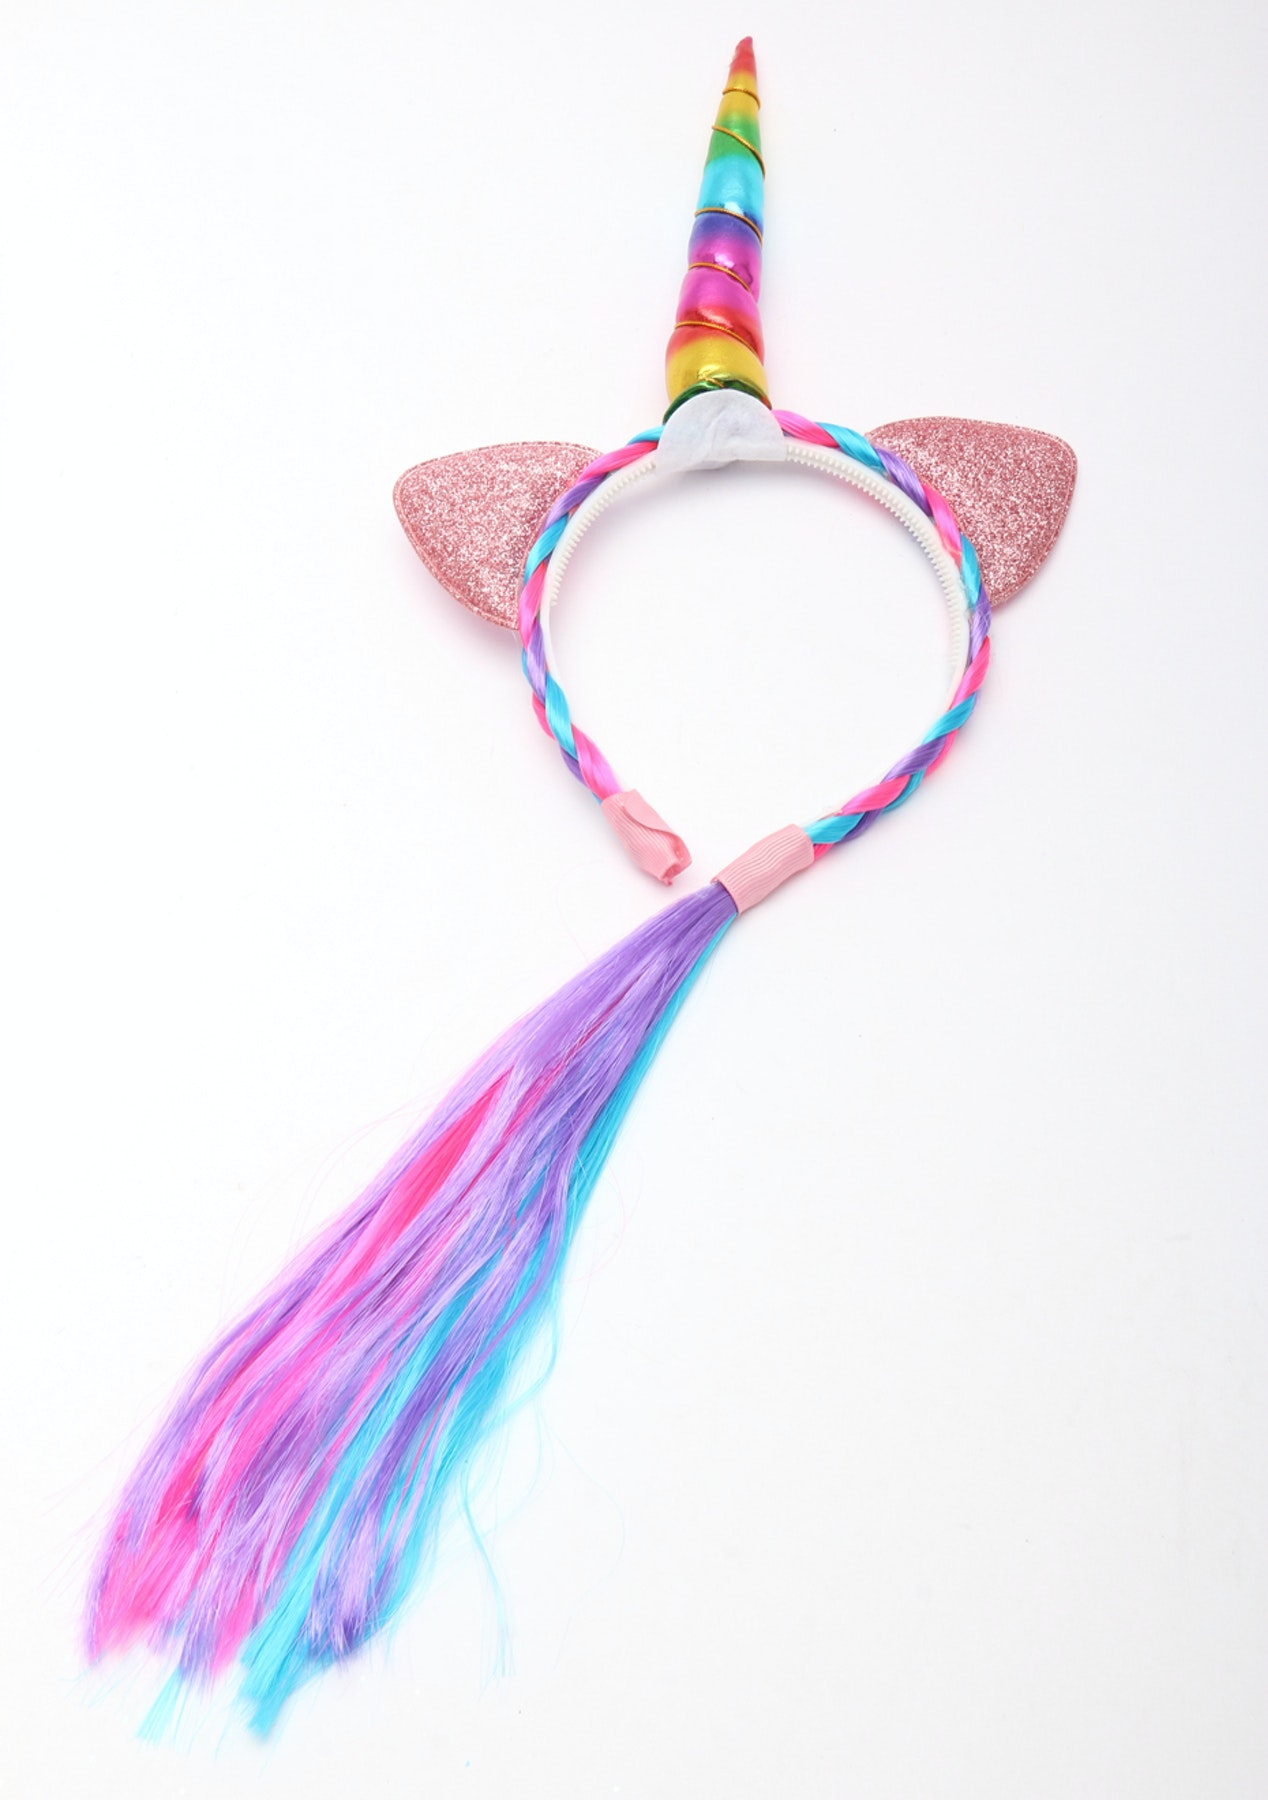 Unicorn Headband With Tail - Rainbow - New Kids Toys   More - Onceit 76dc5a7a939